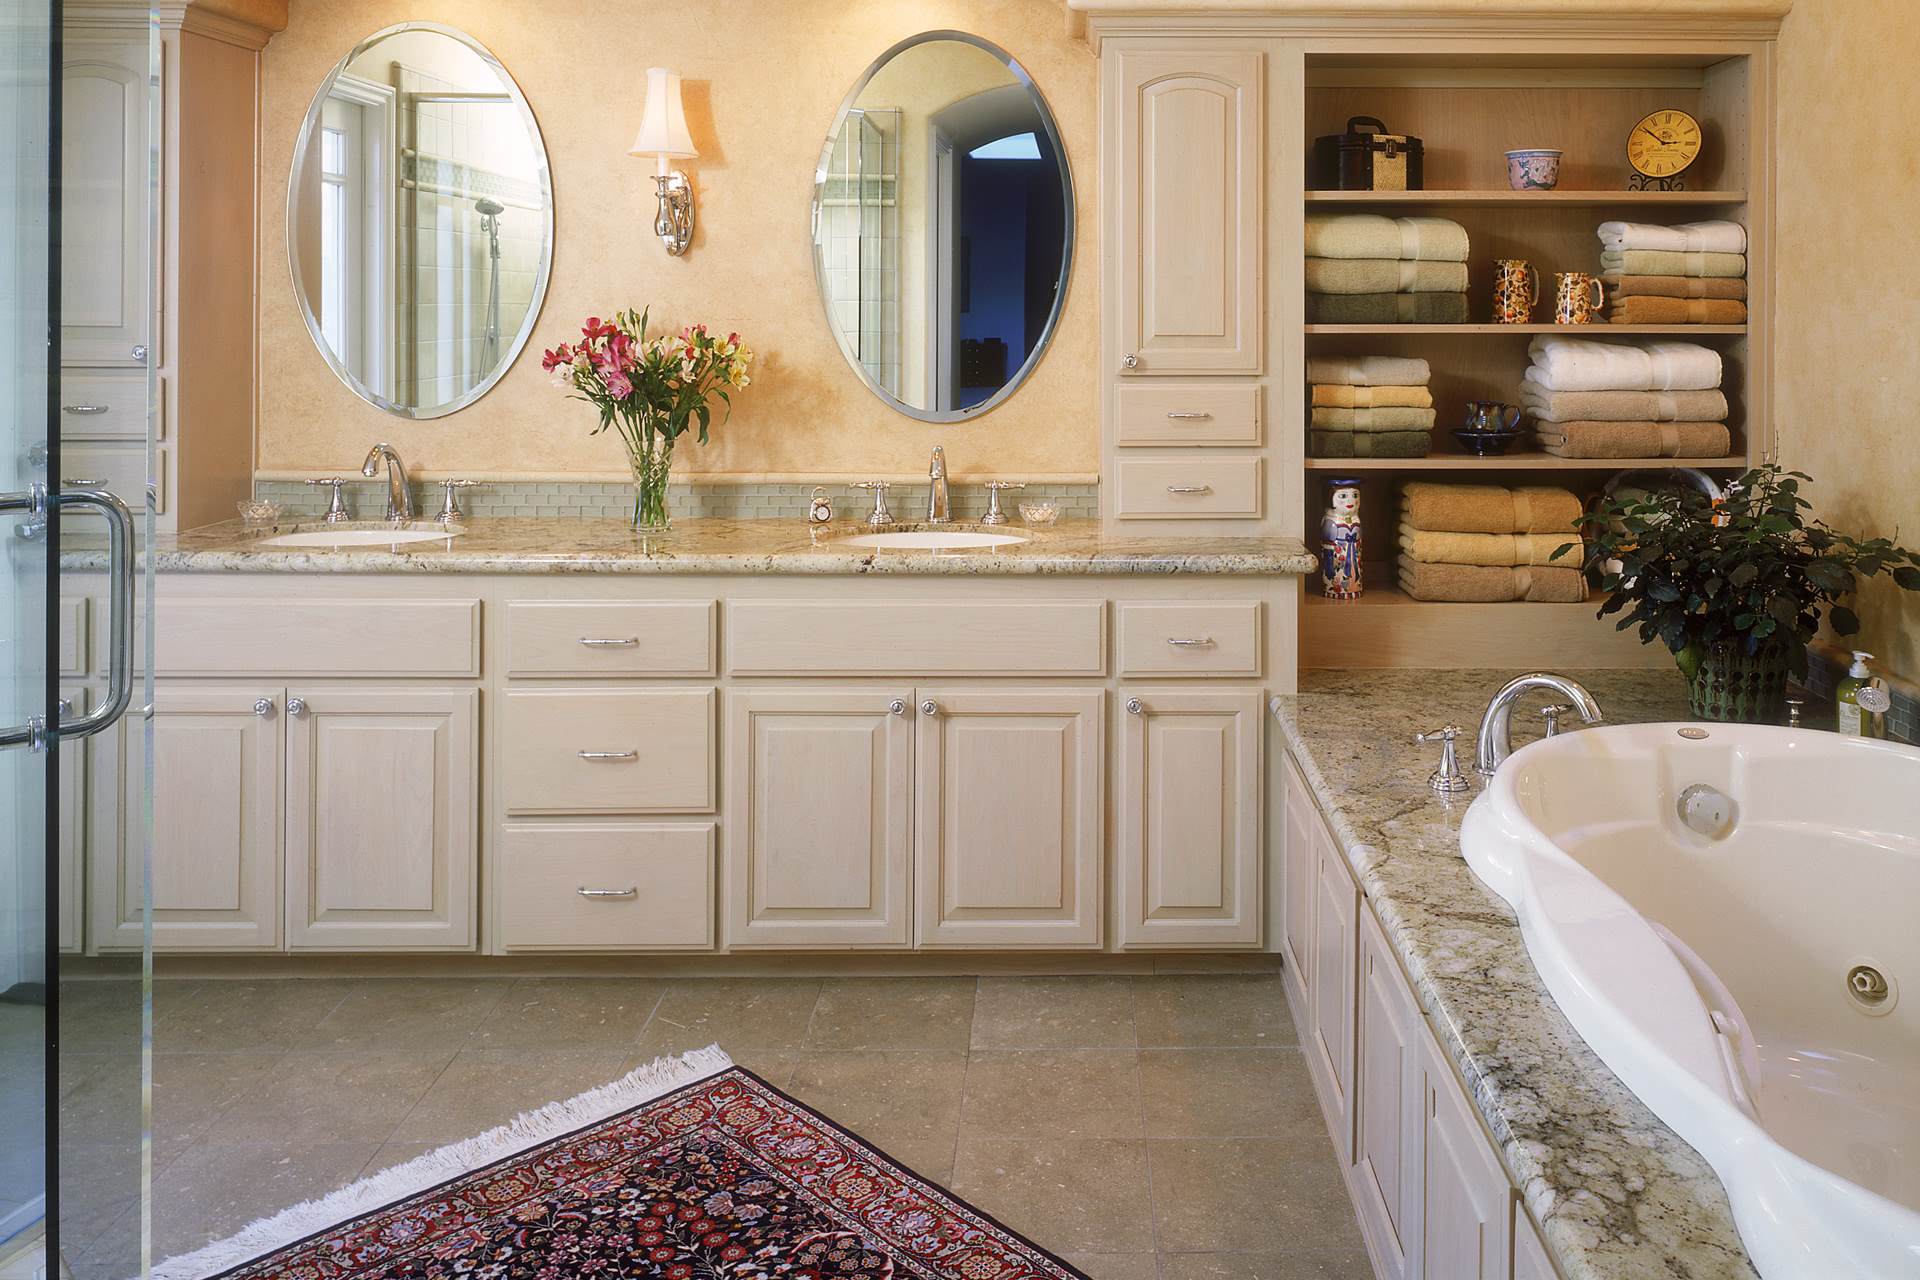 Traditional Style Bathroom Cabinets White Wash Finish Double Sinks Upper  Towers Open Linen Shelving On Tub